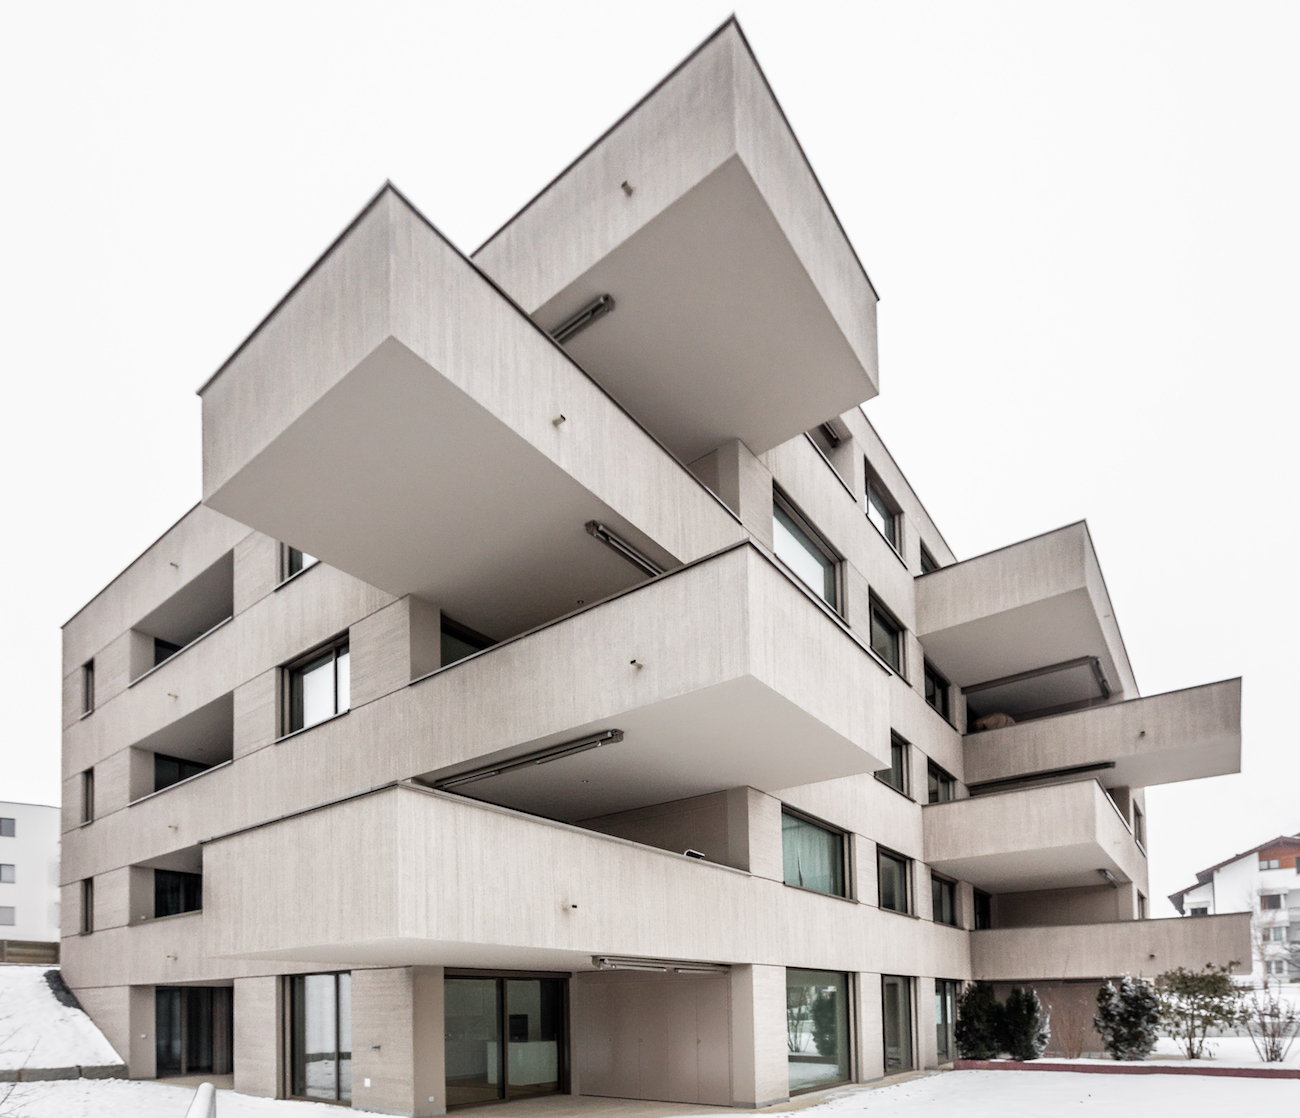 The Intricacy Of Design Of The Existing Buildings Are Transferred Into The  Volume Formation Of The New Building. On The Street Side, The Vertically  And ...